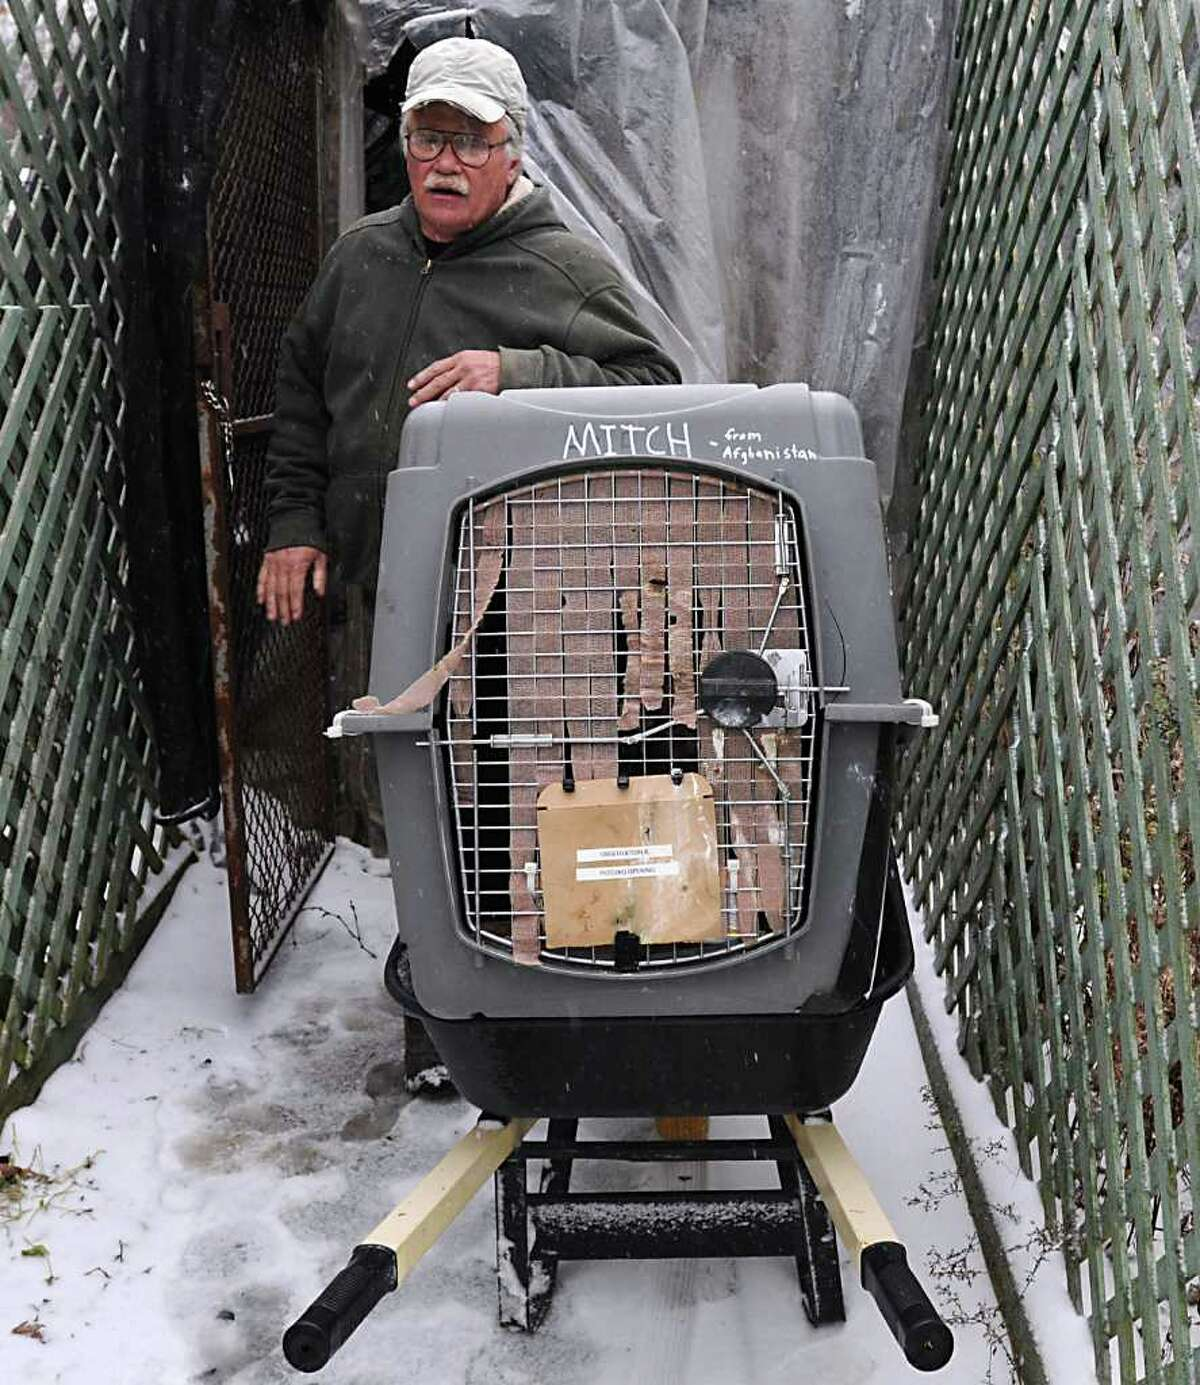 Pete Dubacher wheels Mitch, the wounded steppe eagle from Afghanistan who Navy SEALs nursed back to health, to his new living quarters at the Berkshire Bird Paradise Sanctuary in Petersburgh, NY, on November 8, 2010. (Lori Van Buren / Times Union)